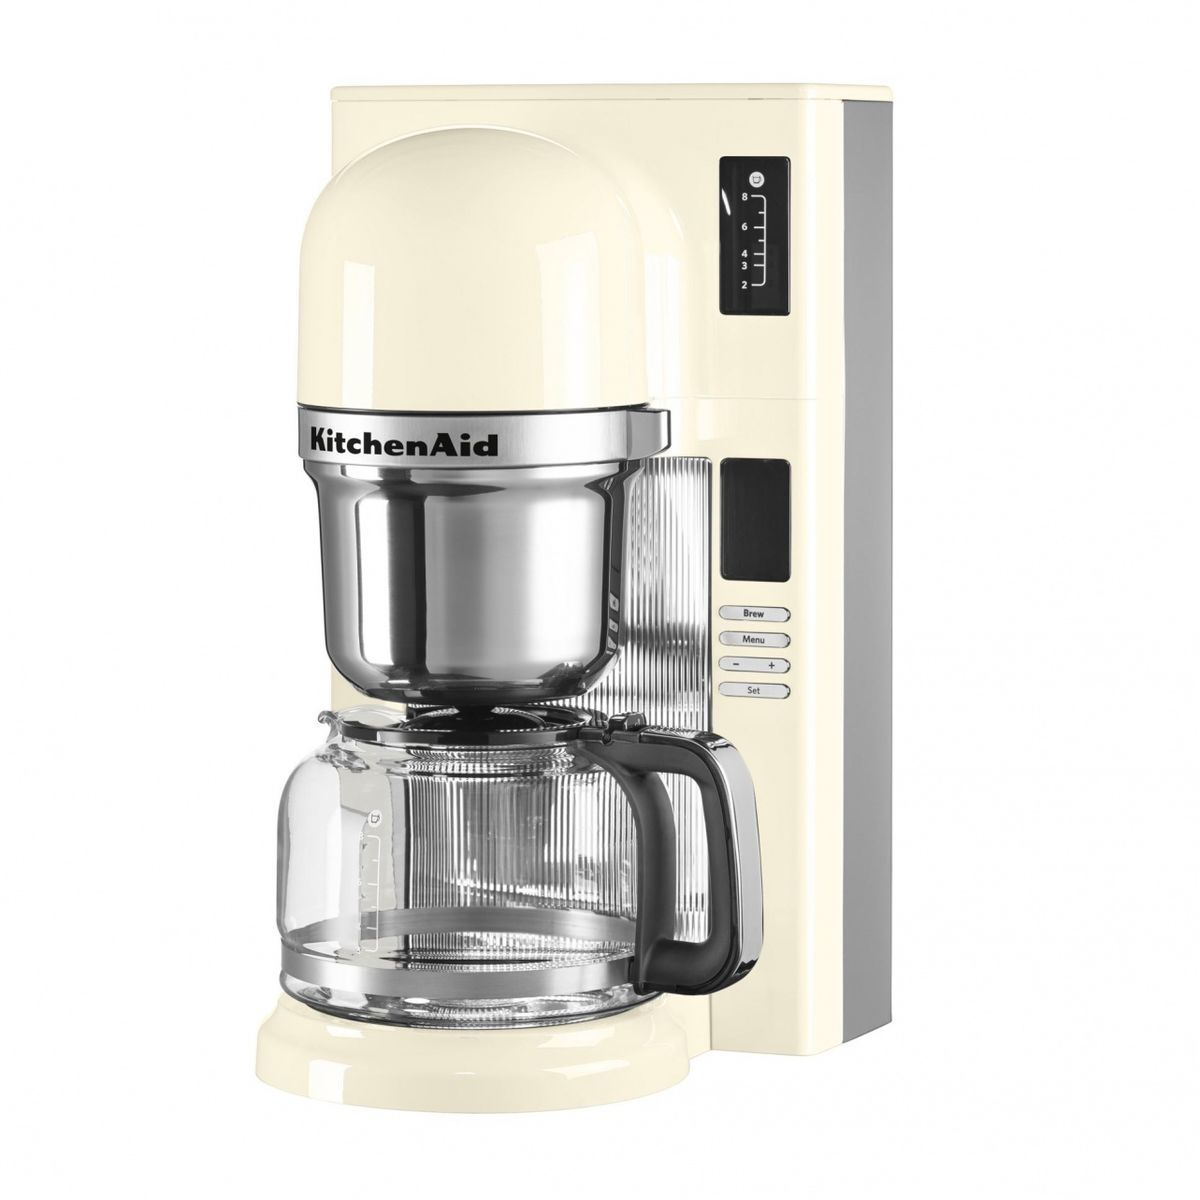 kitchenaid 5kcm0802 pour over coffee brewer kitchenaid. Black Bedroom Furniture Sets. Home Design Ideas